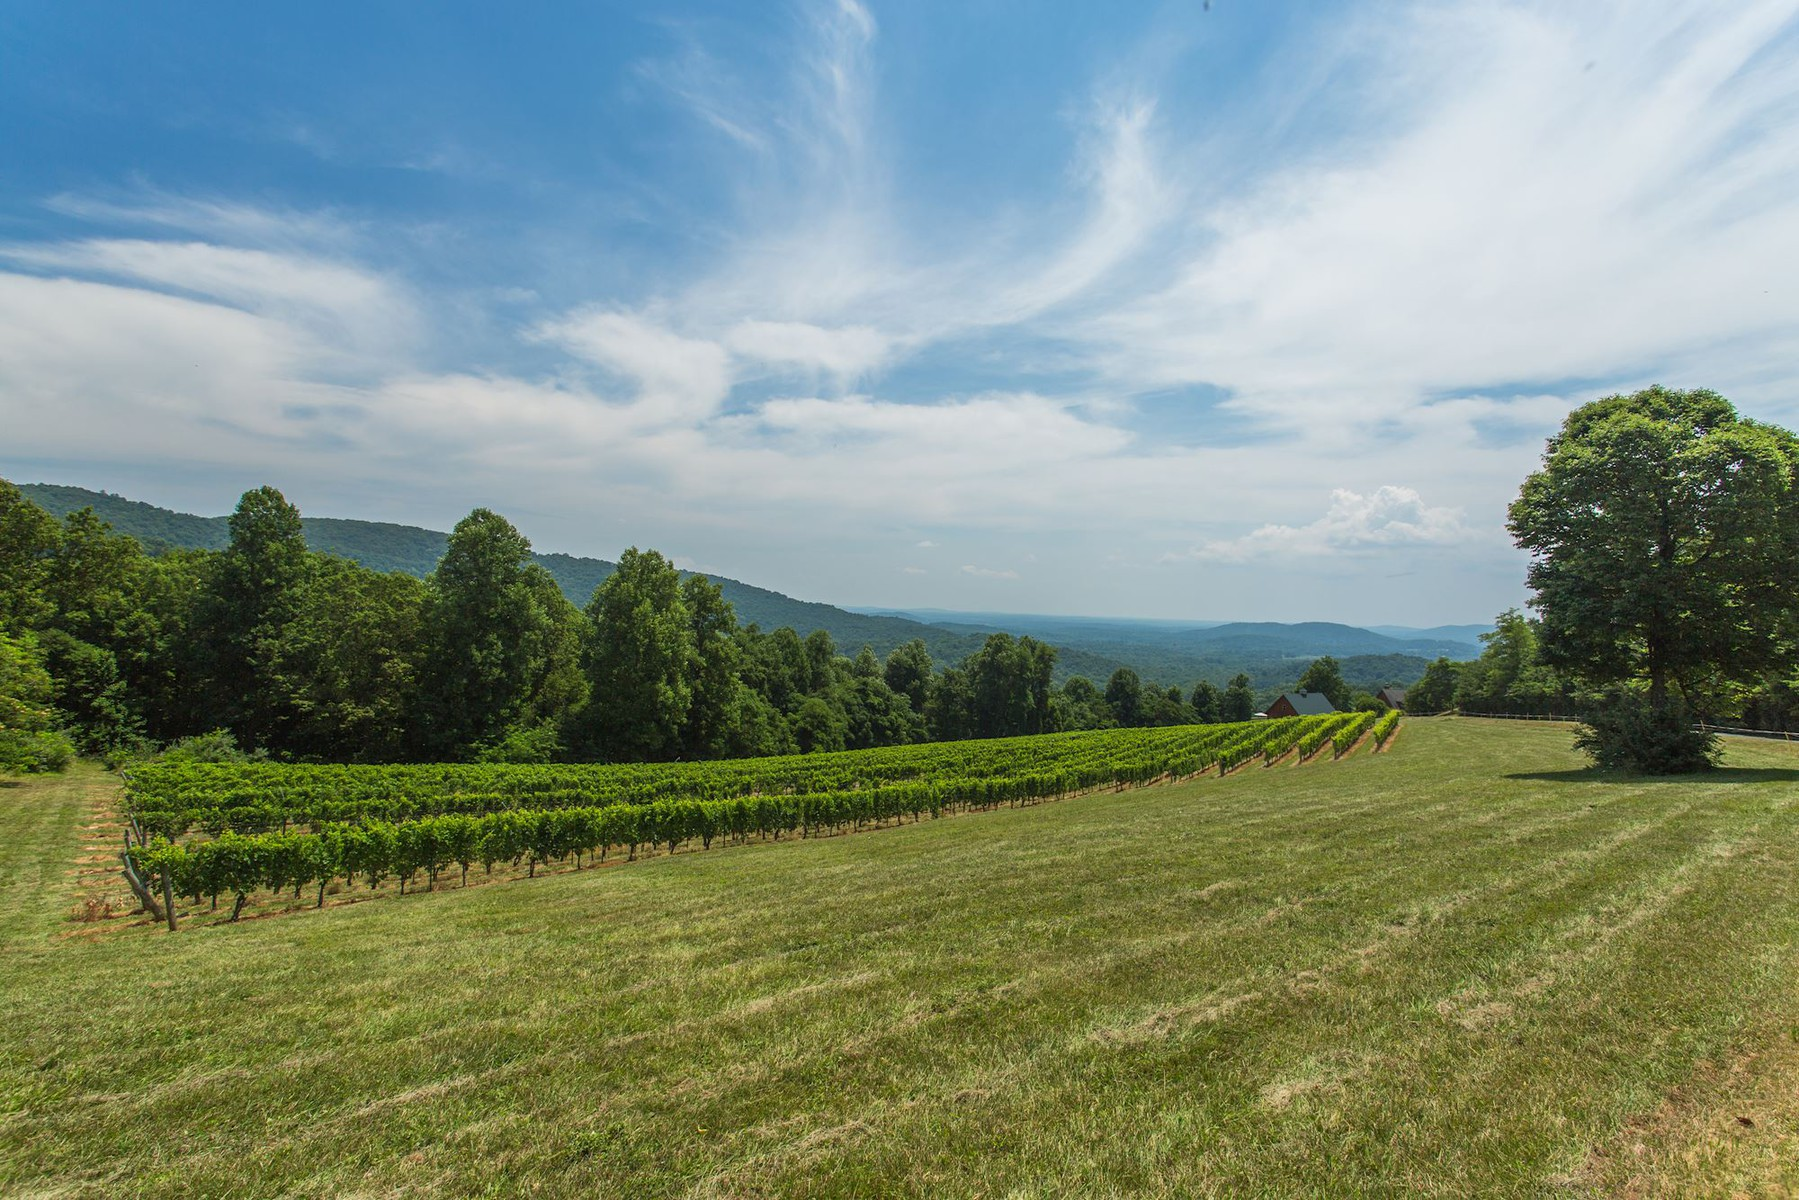 Additional photo for property listing at Chester Gap Cellars 4615 Remount Rd 弗兰特罗亚尔, 弗吉尼亚州 22630 美国